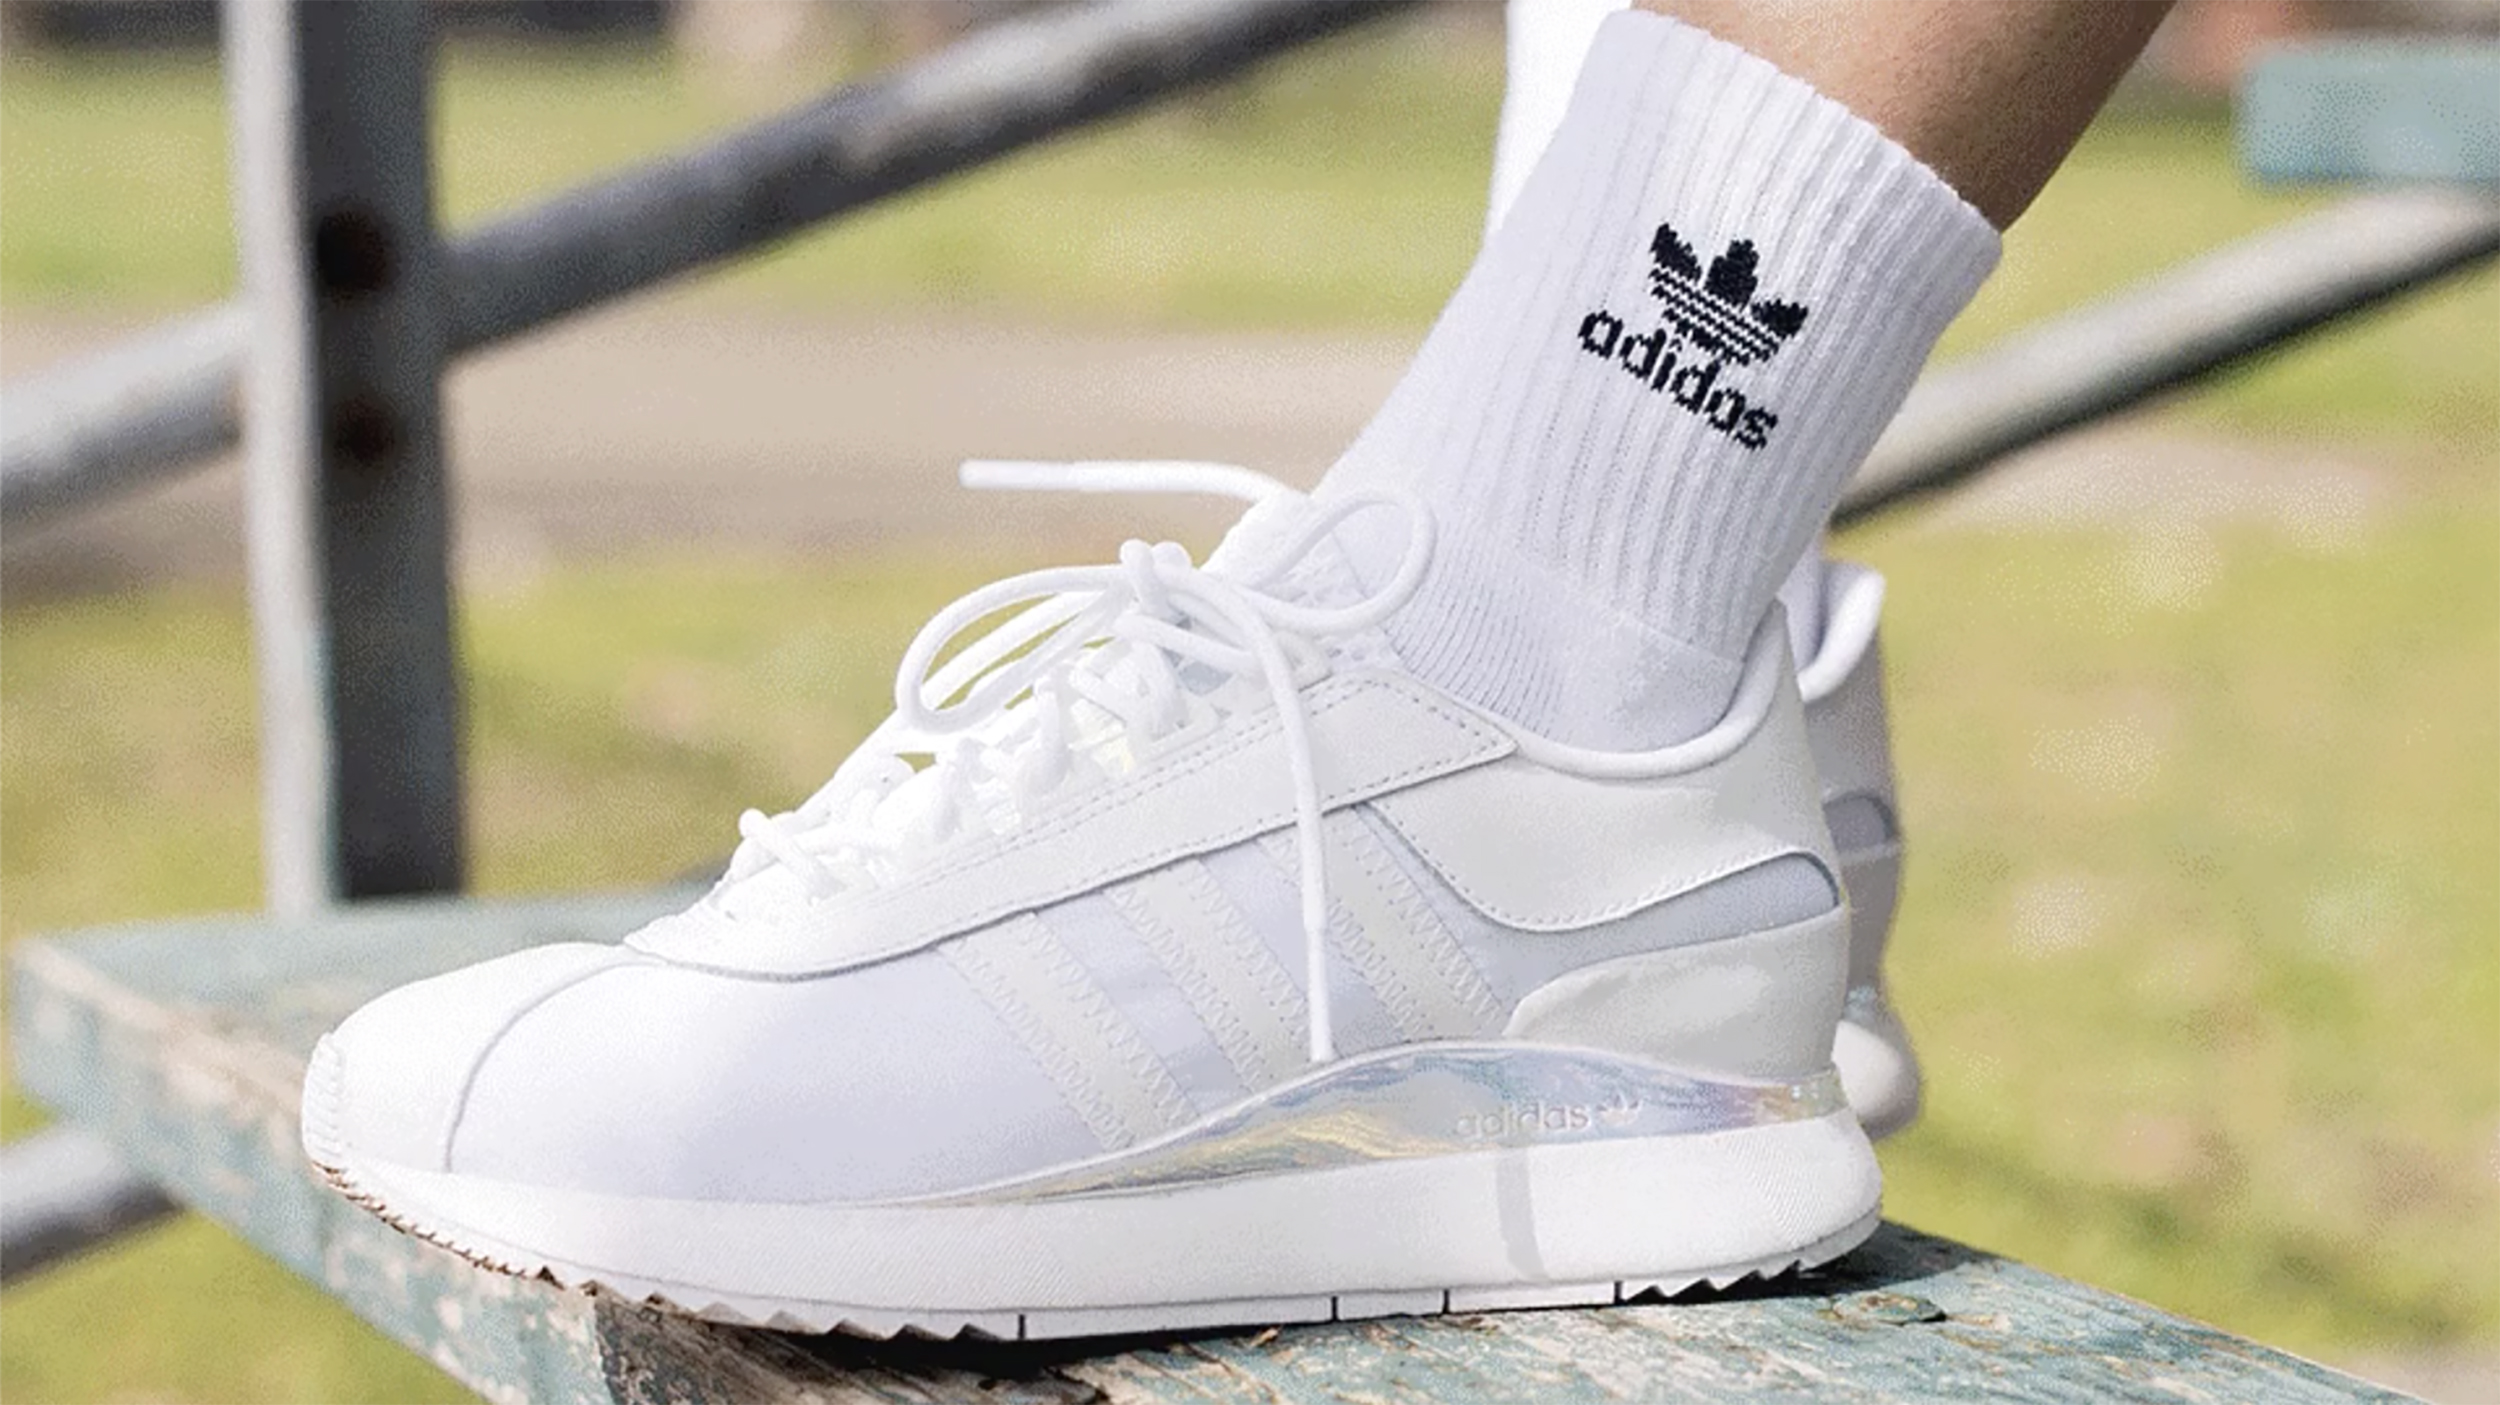 Adidas sale: Take up to 50% off during